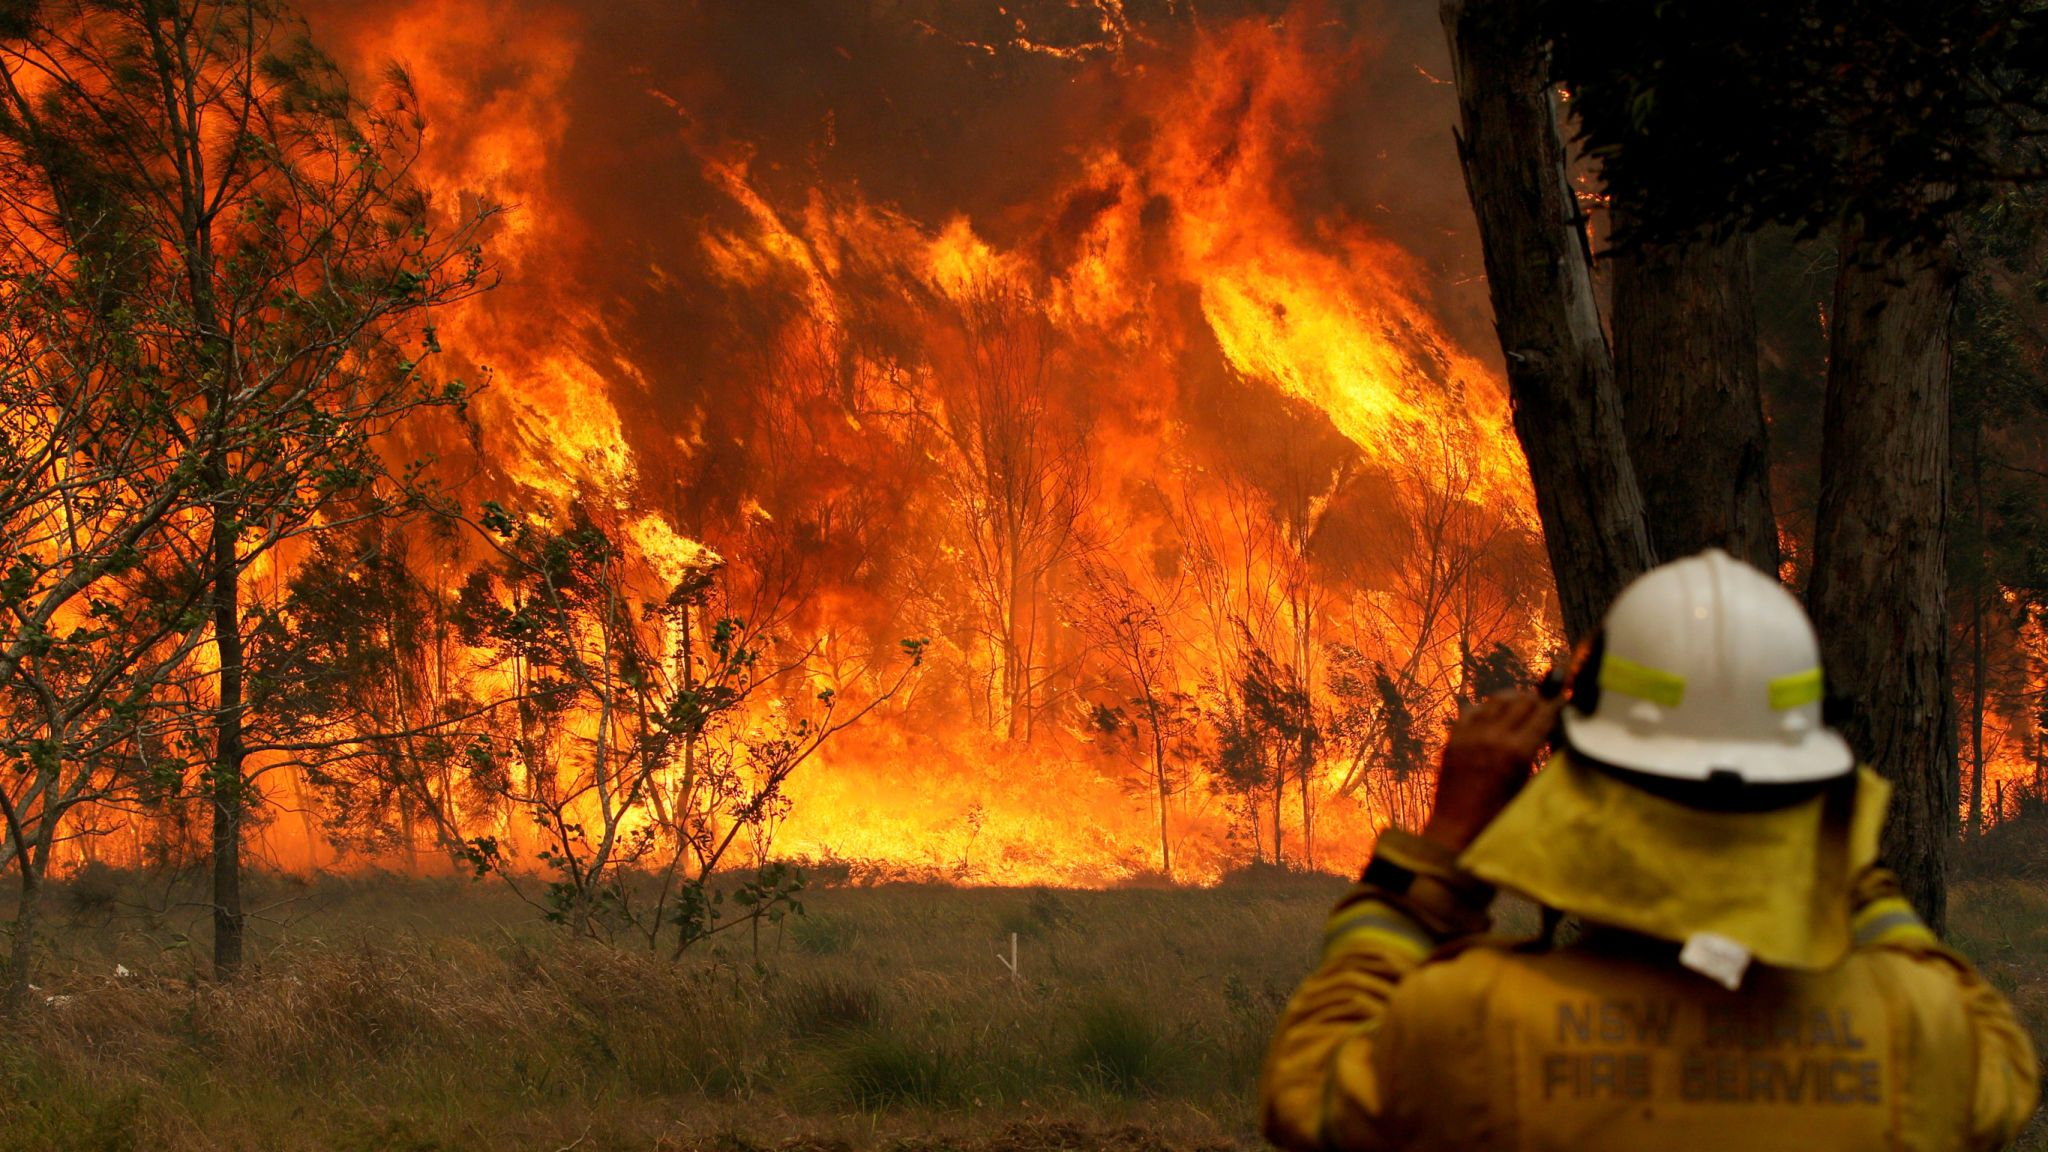 Ways you can help during Australia's wildfires